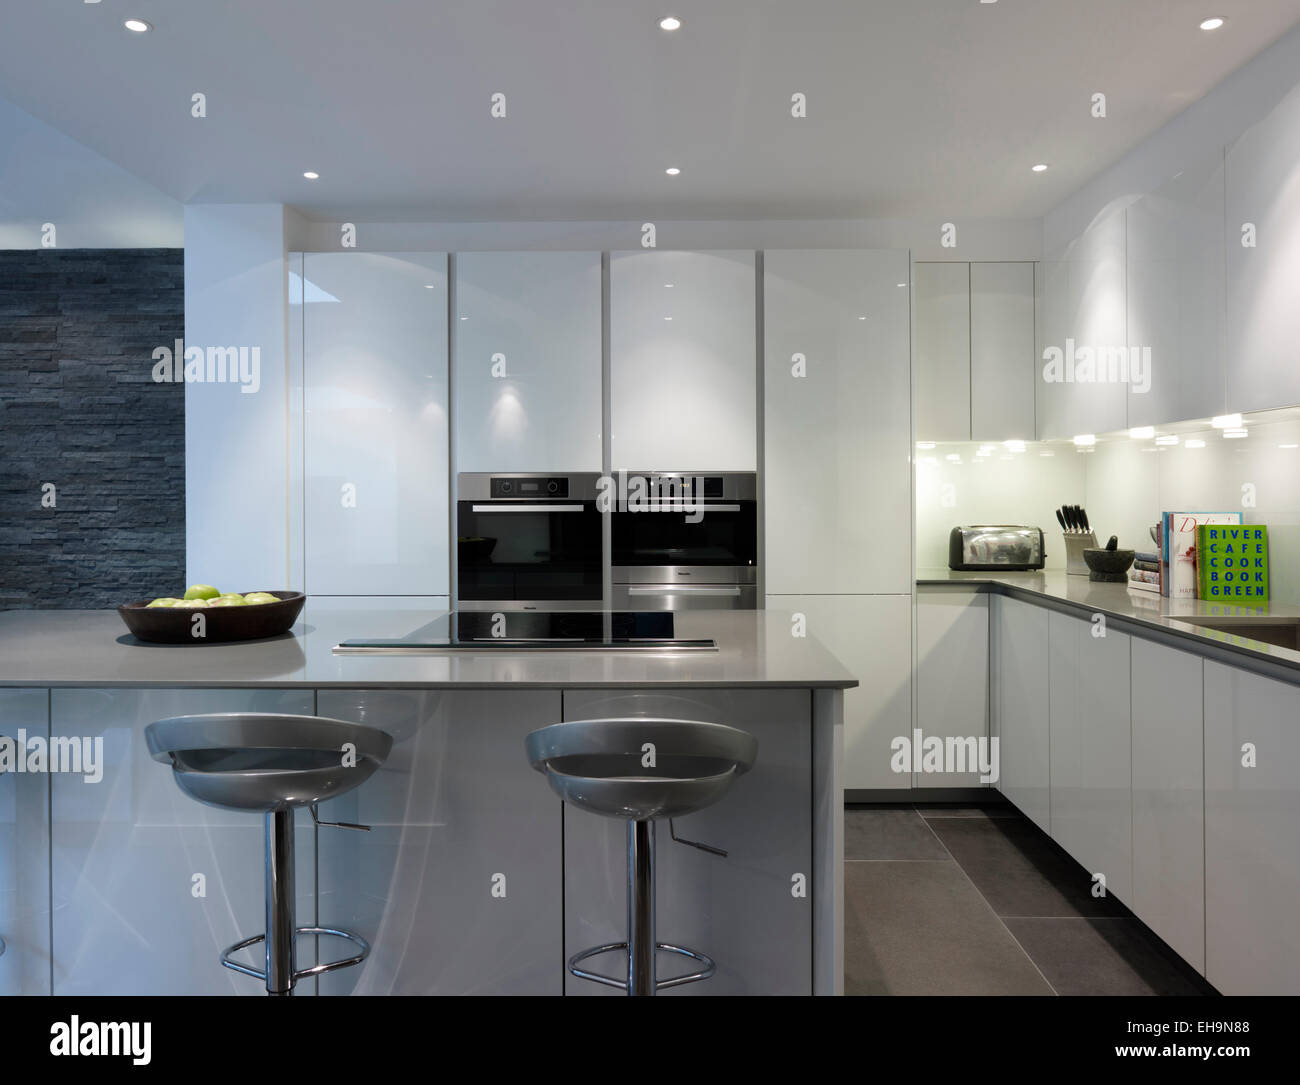 Kitchen Bar With Stone: Modern Lit Kitchen With Breakfast Bar And Stools And Stone